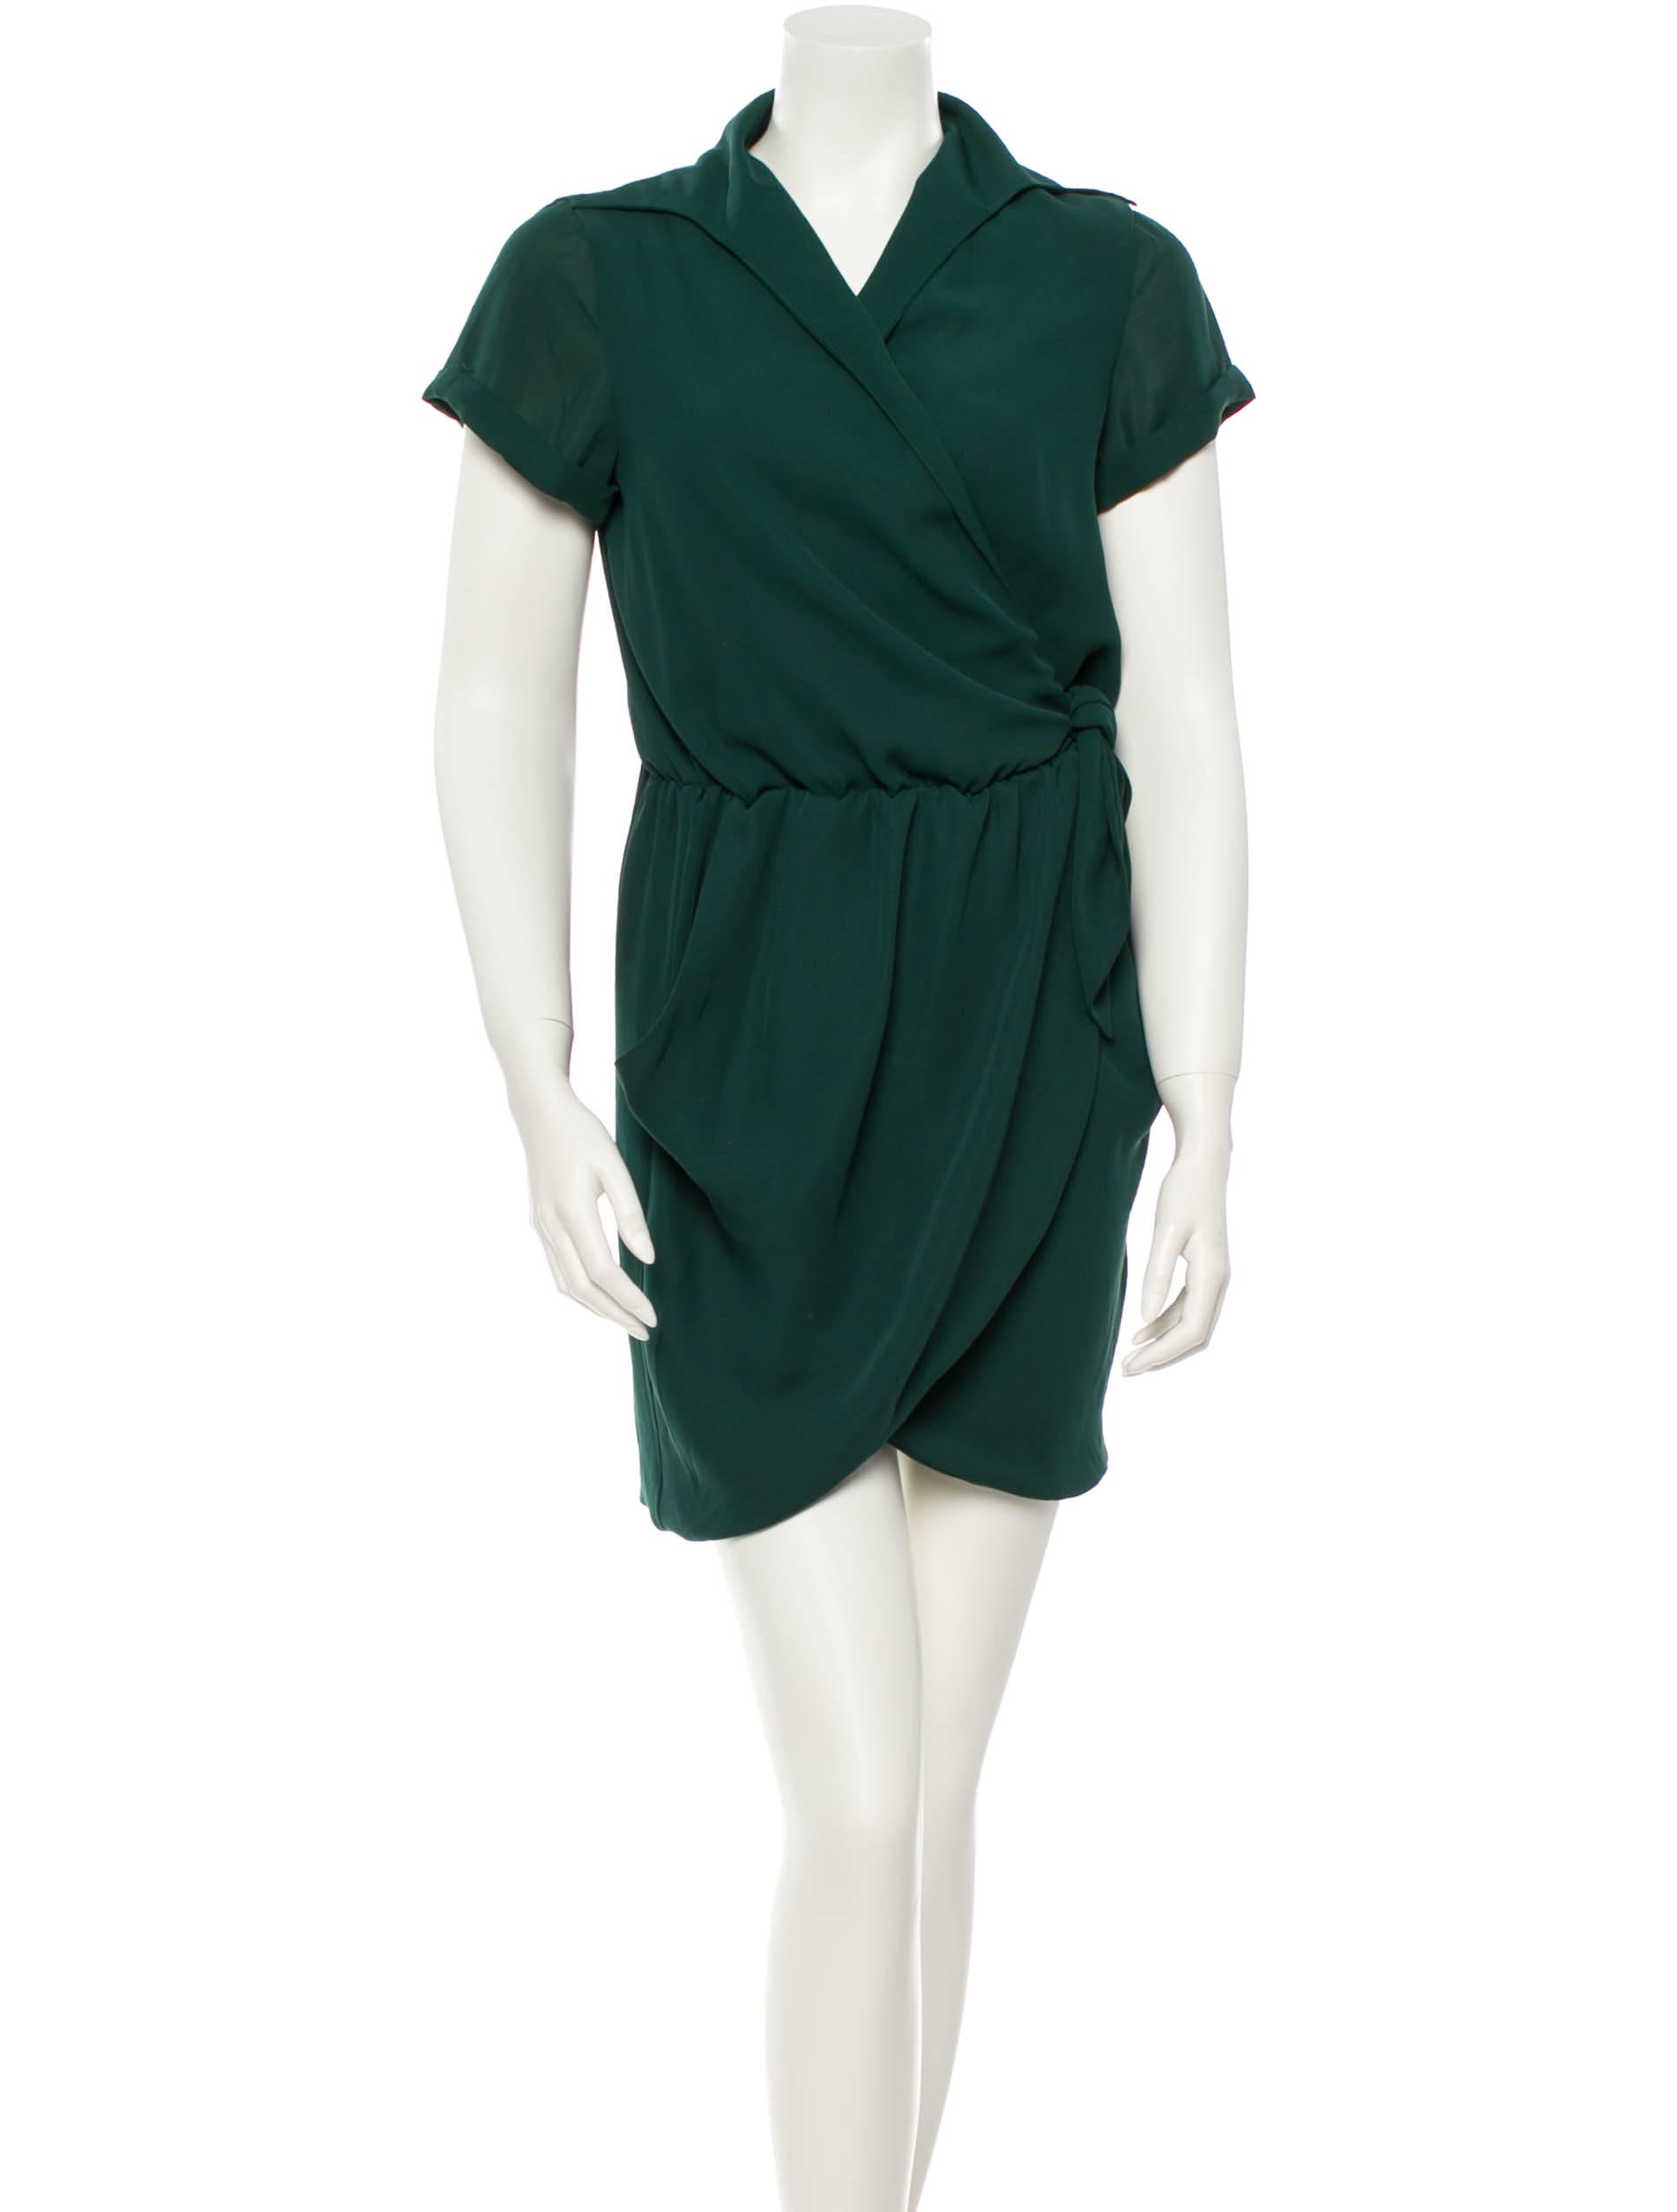 Halston heritage dress clothing wh121462 the realreal for Halston heritage shirt dress